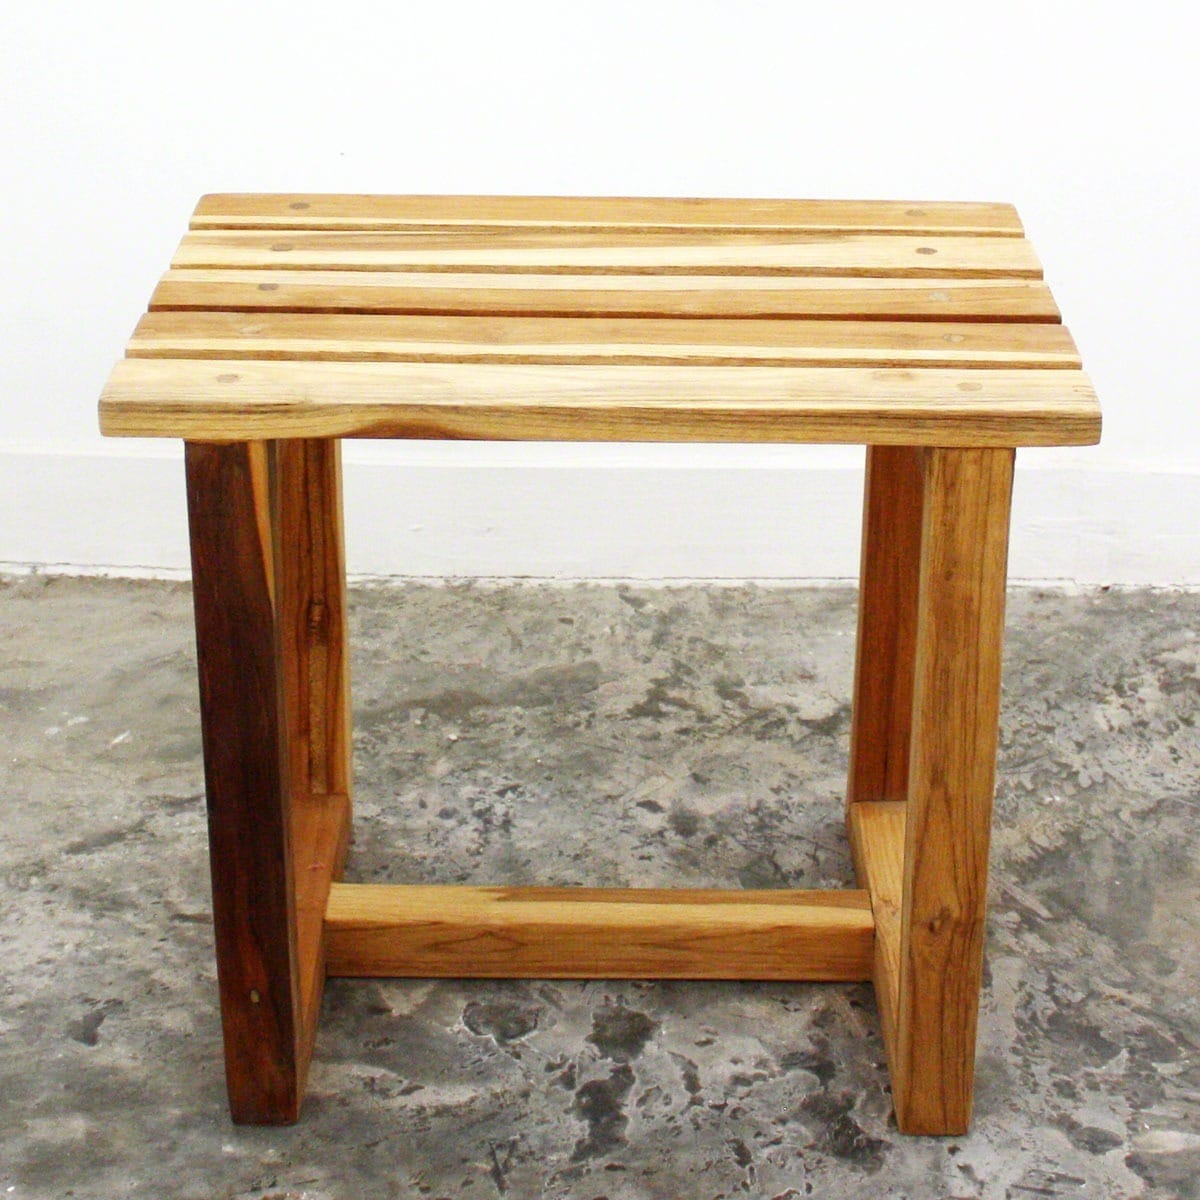 Wood Shower Bench Hand-doweled Teak Oil-finished Stool Day Spa Bath ...